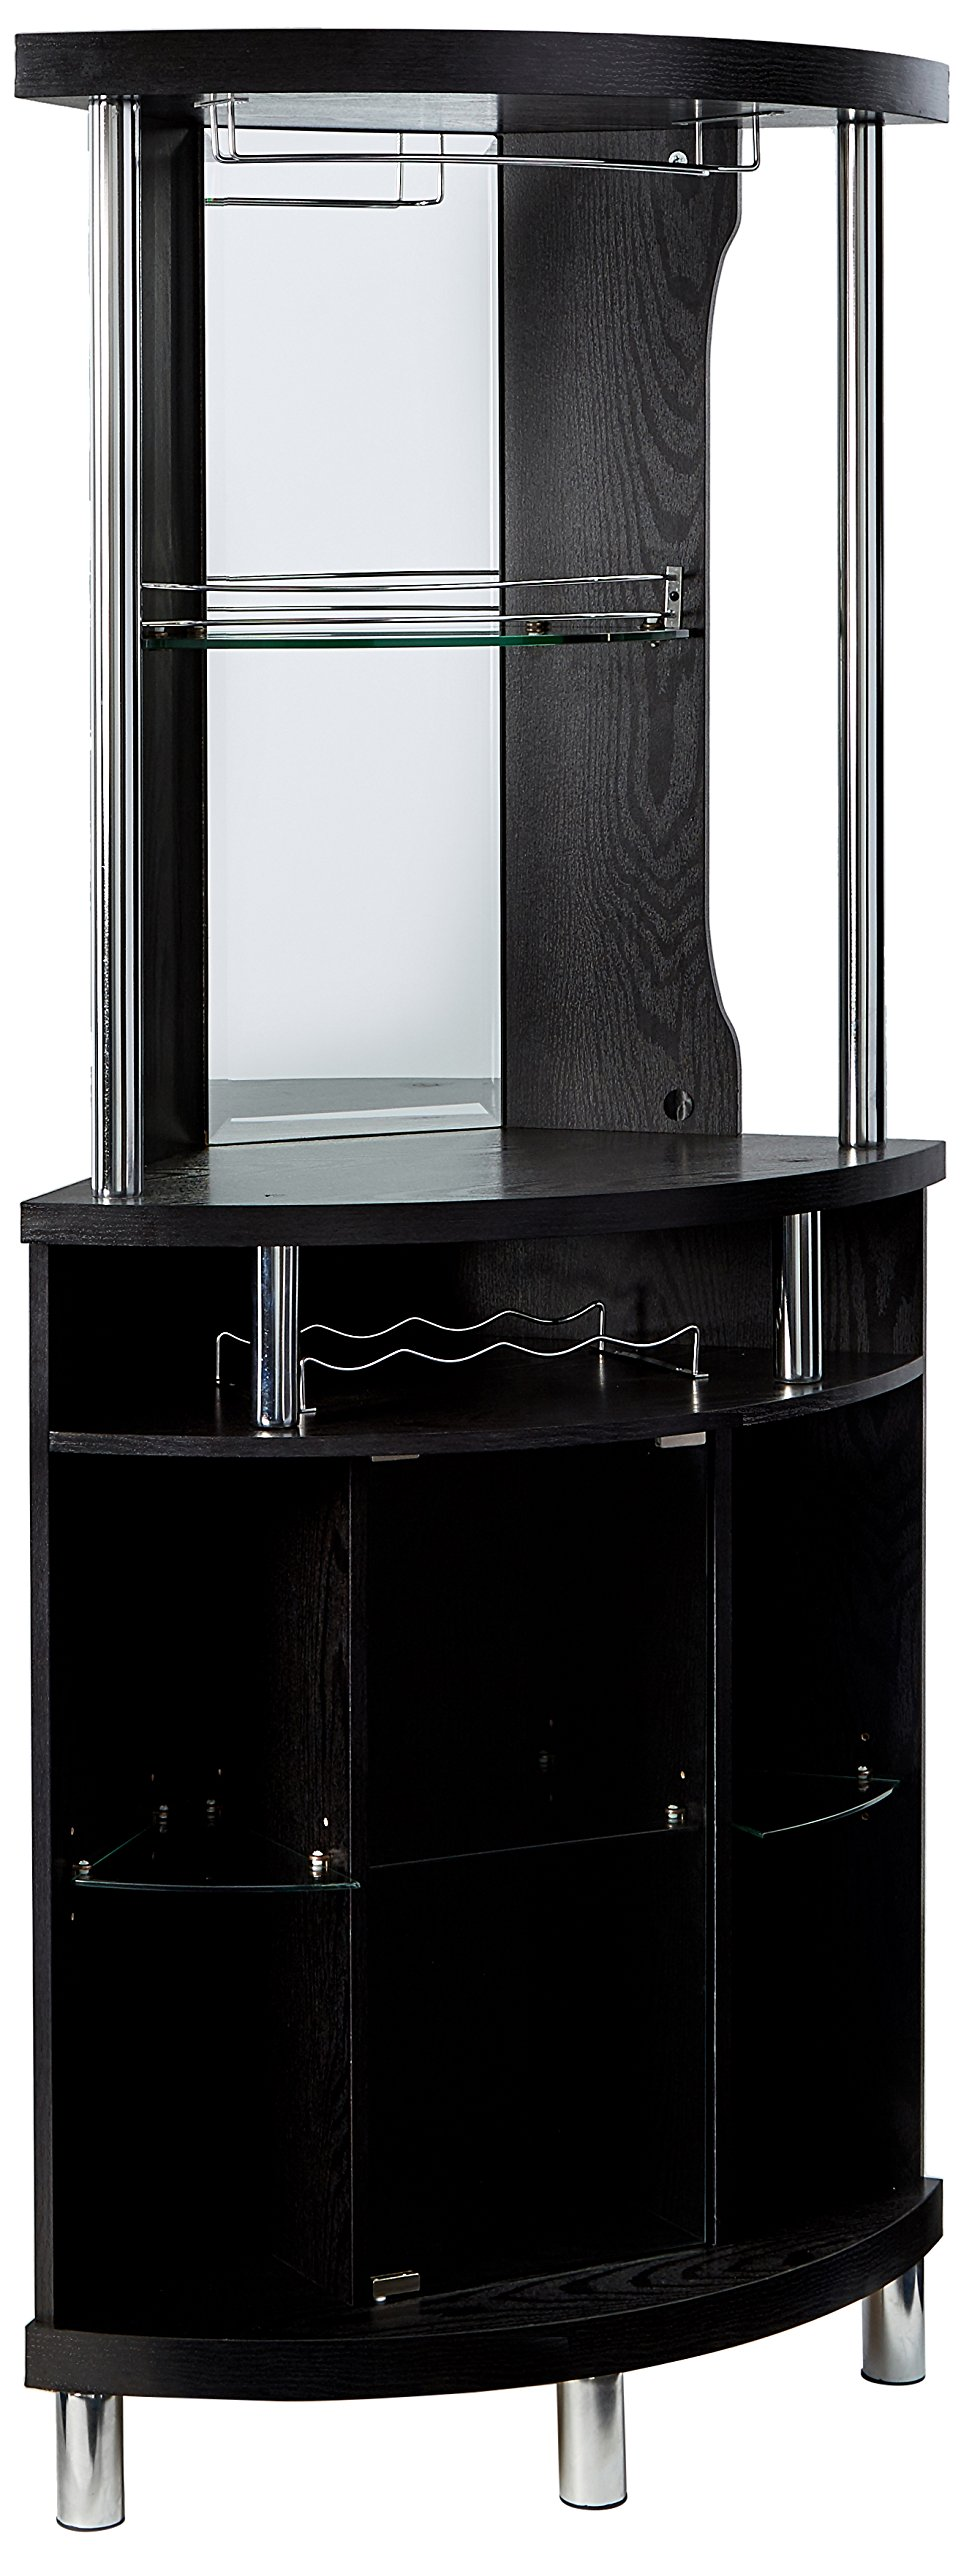 Home Source Corner Bar Unit, Black by Home Source